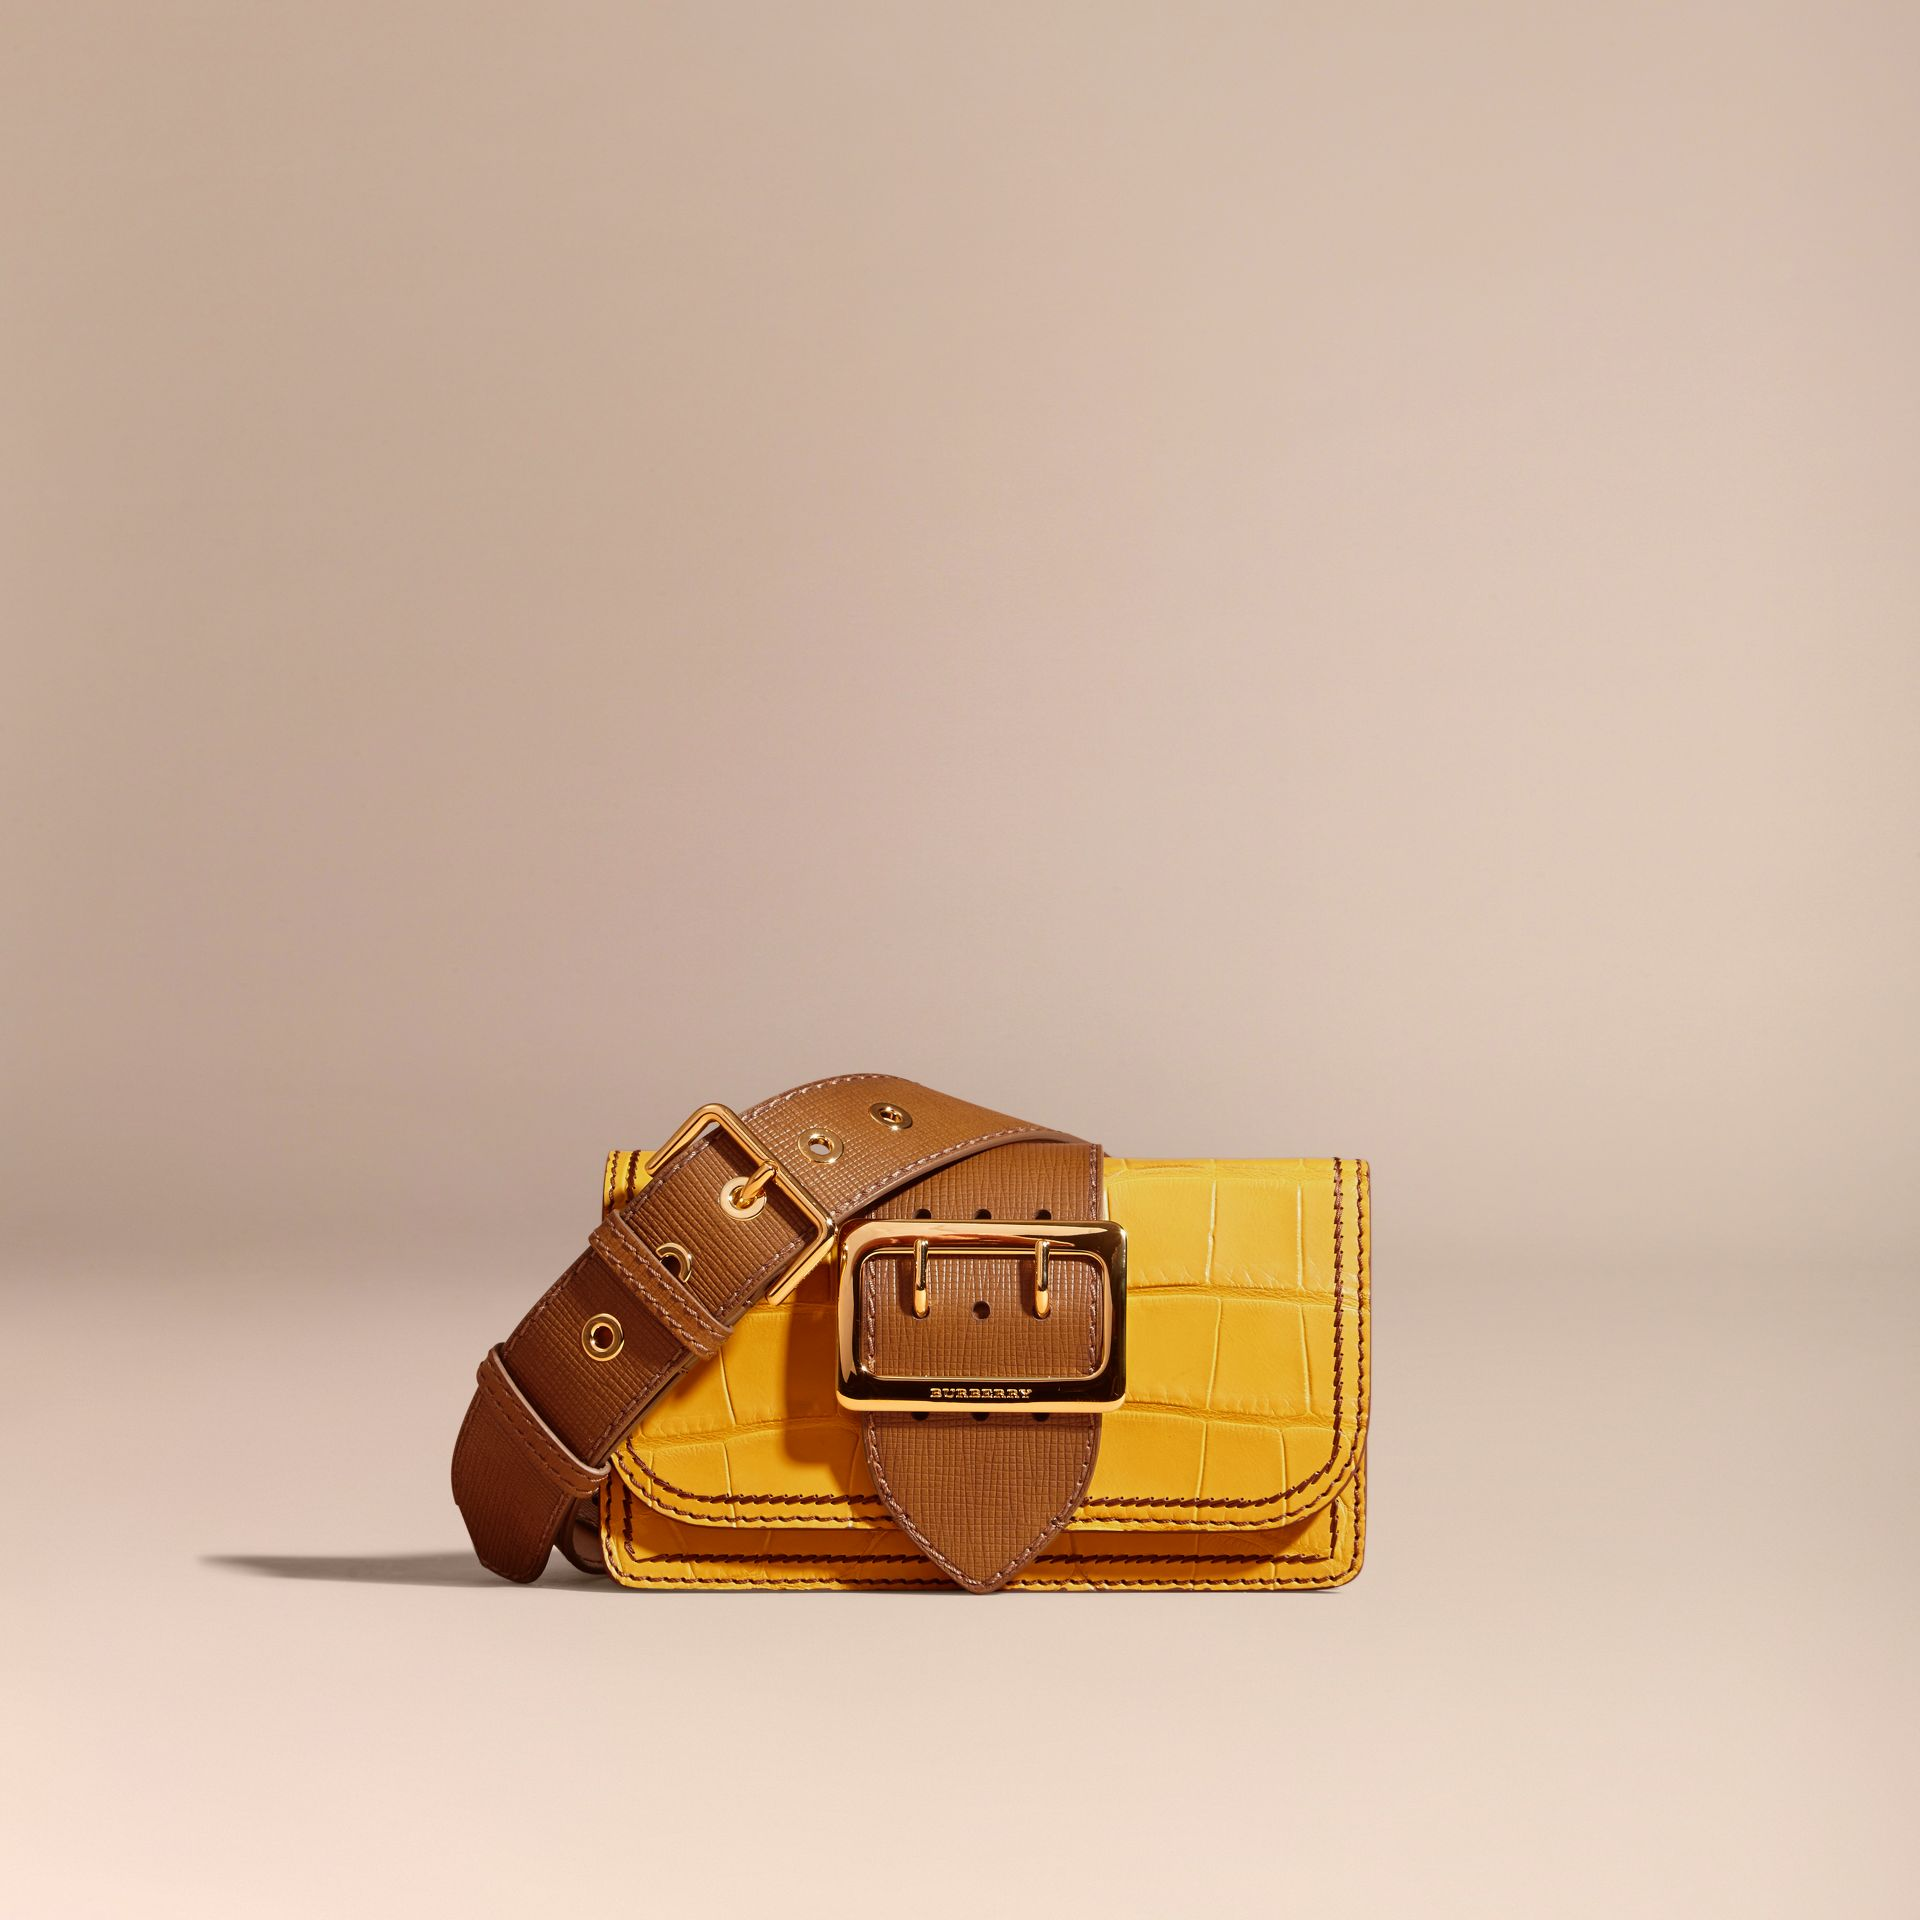 The Small Buckle Bag in Alligator and Leather in Citrus Yellow / Tan - Women | Burberry Canada - gallery image 9